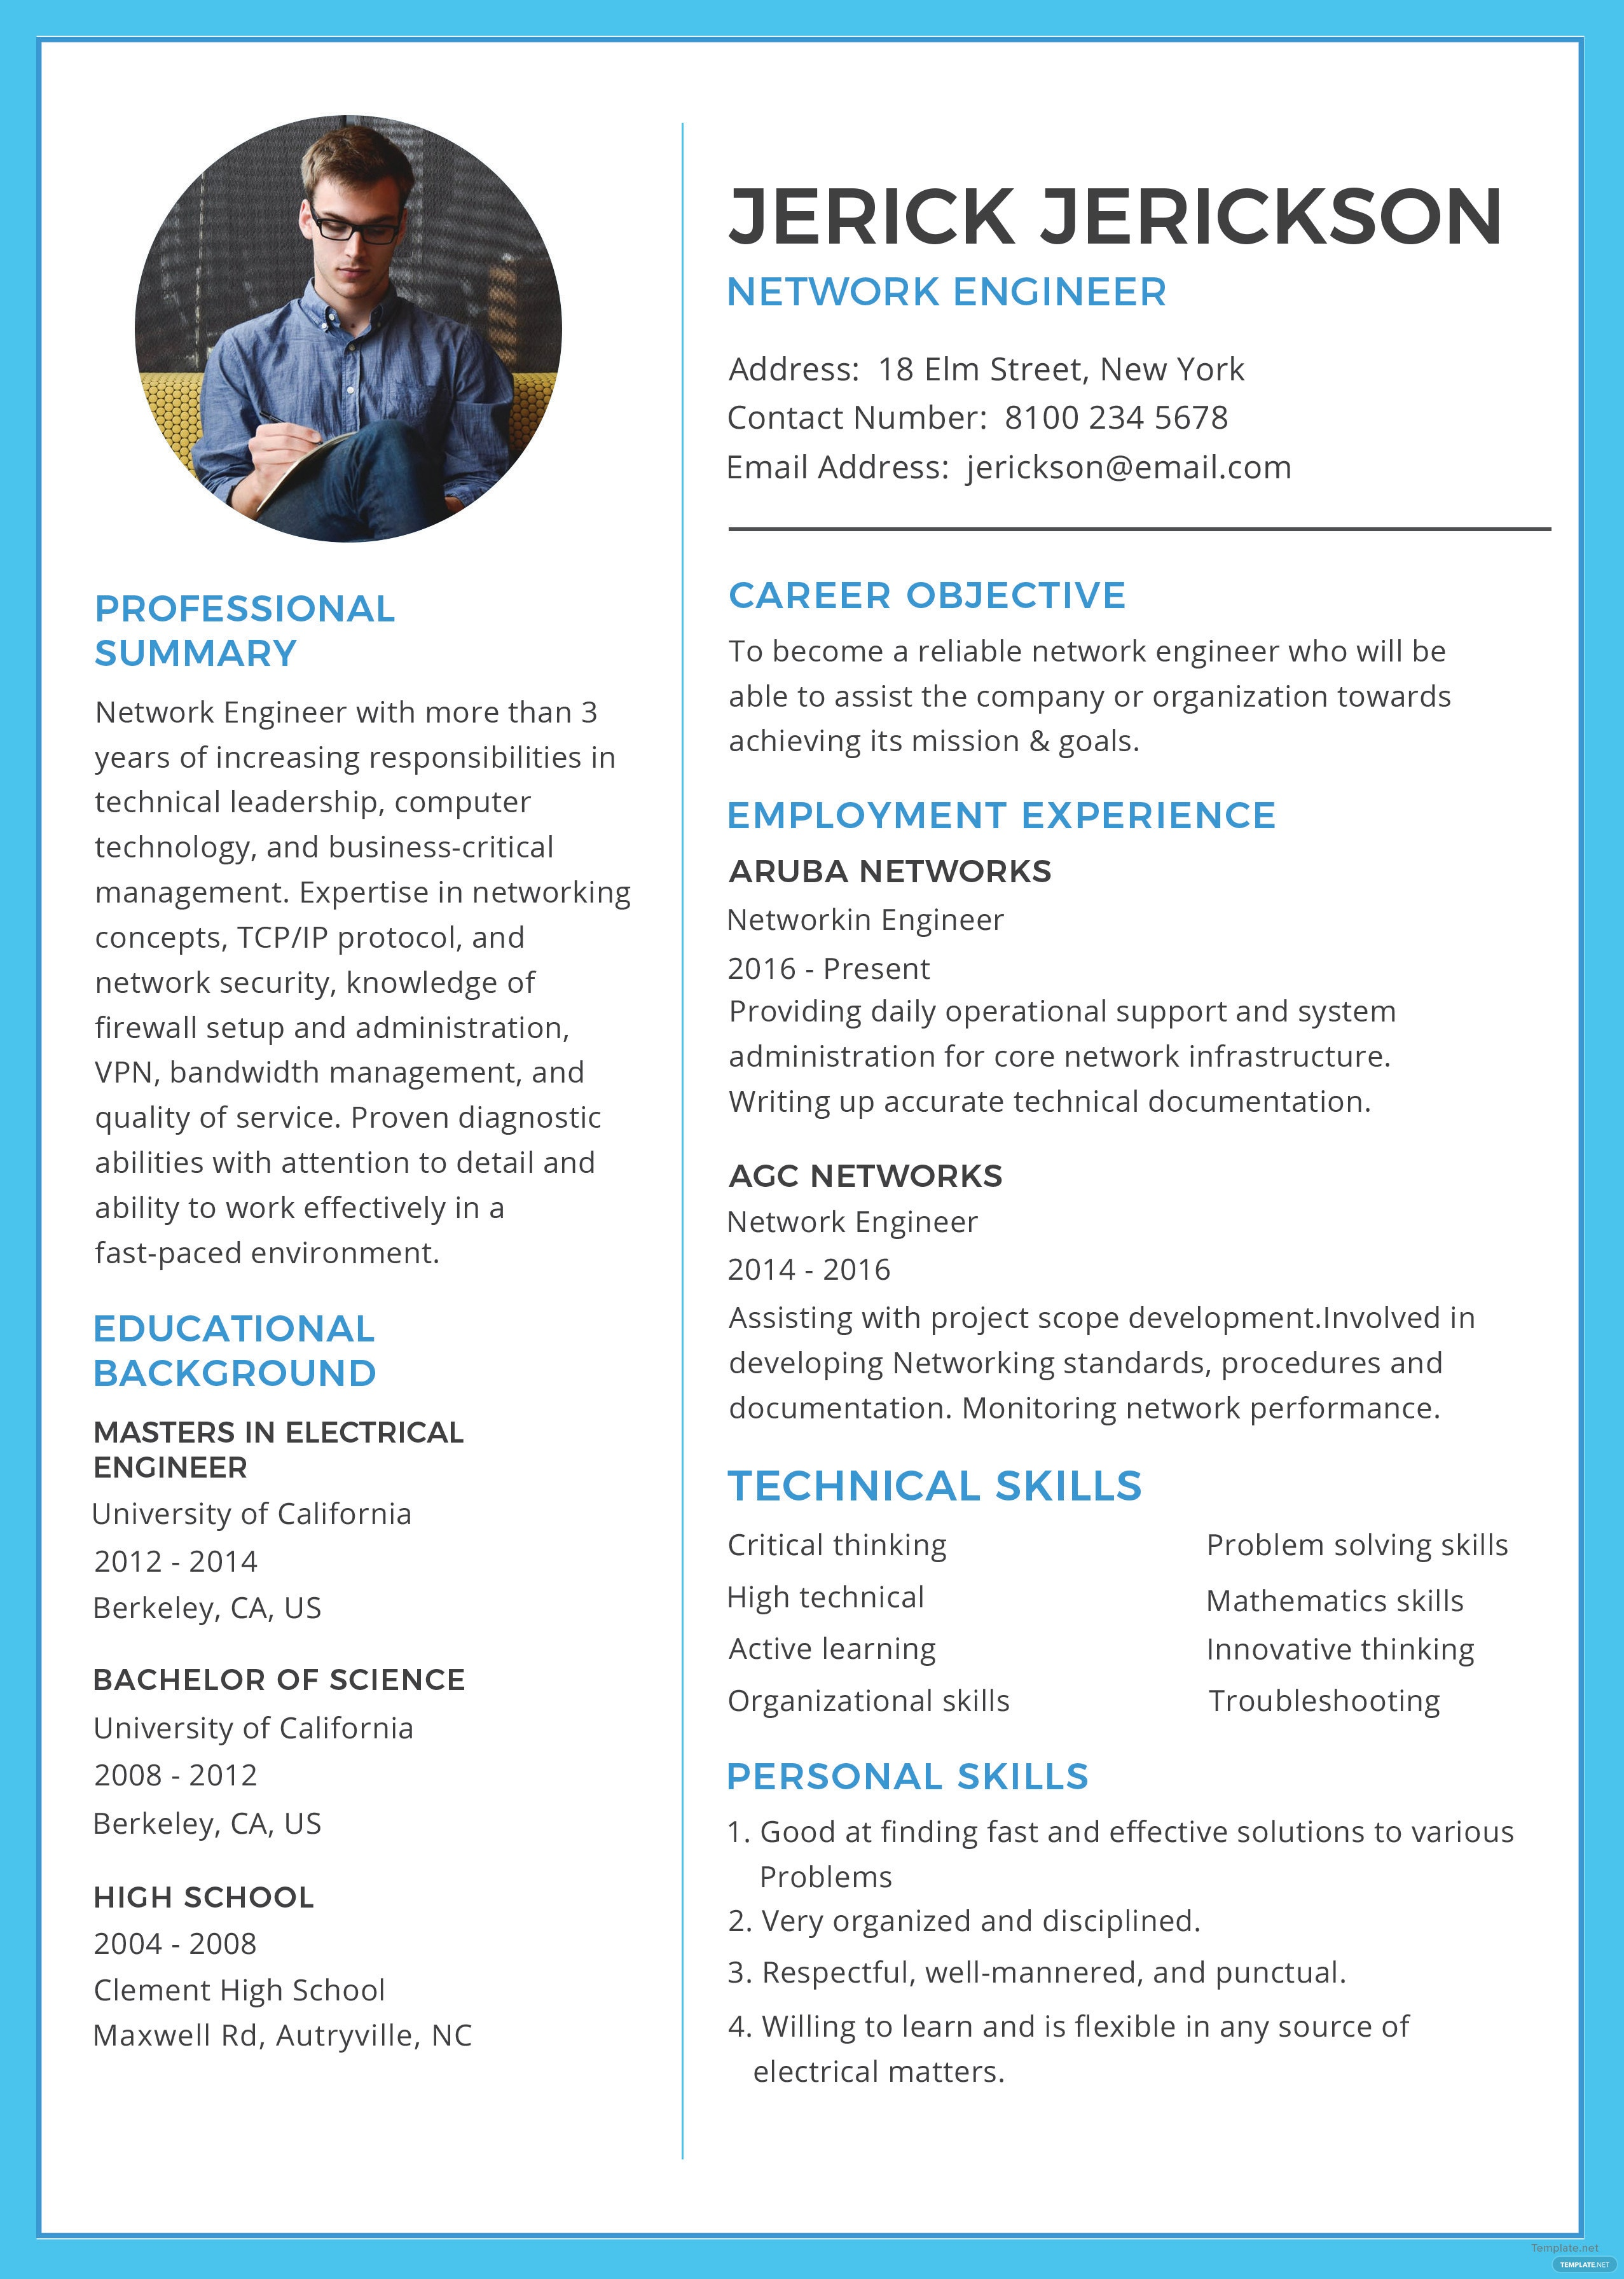 free basic network engineer resume and cv template in adobe photoshop  microsoft word  adobe